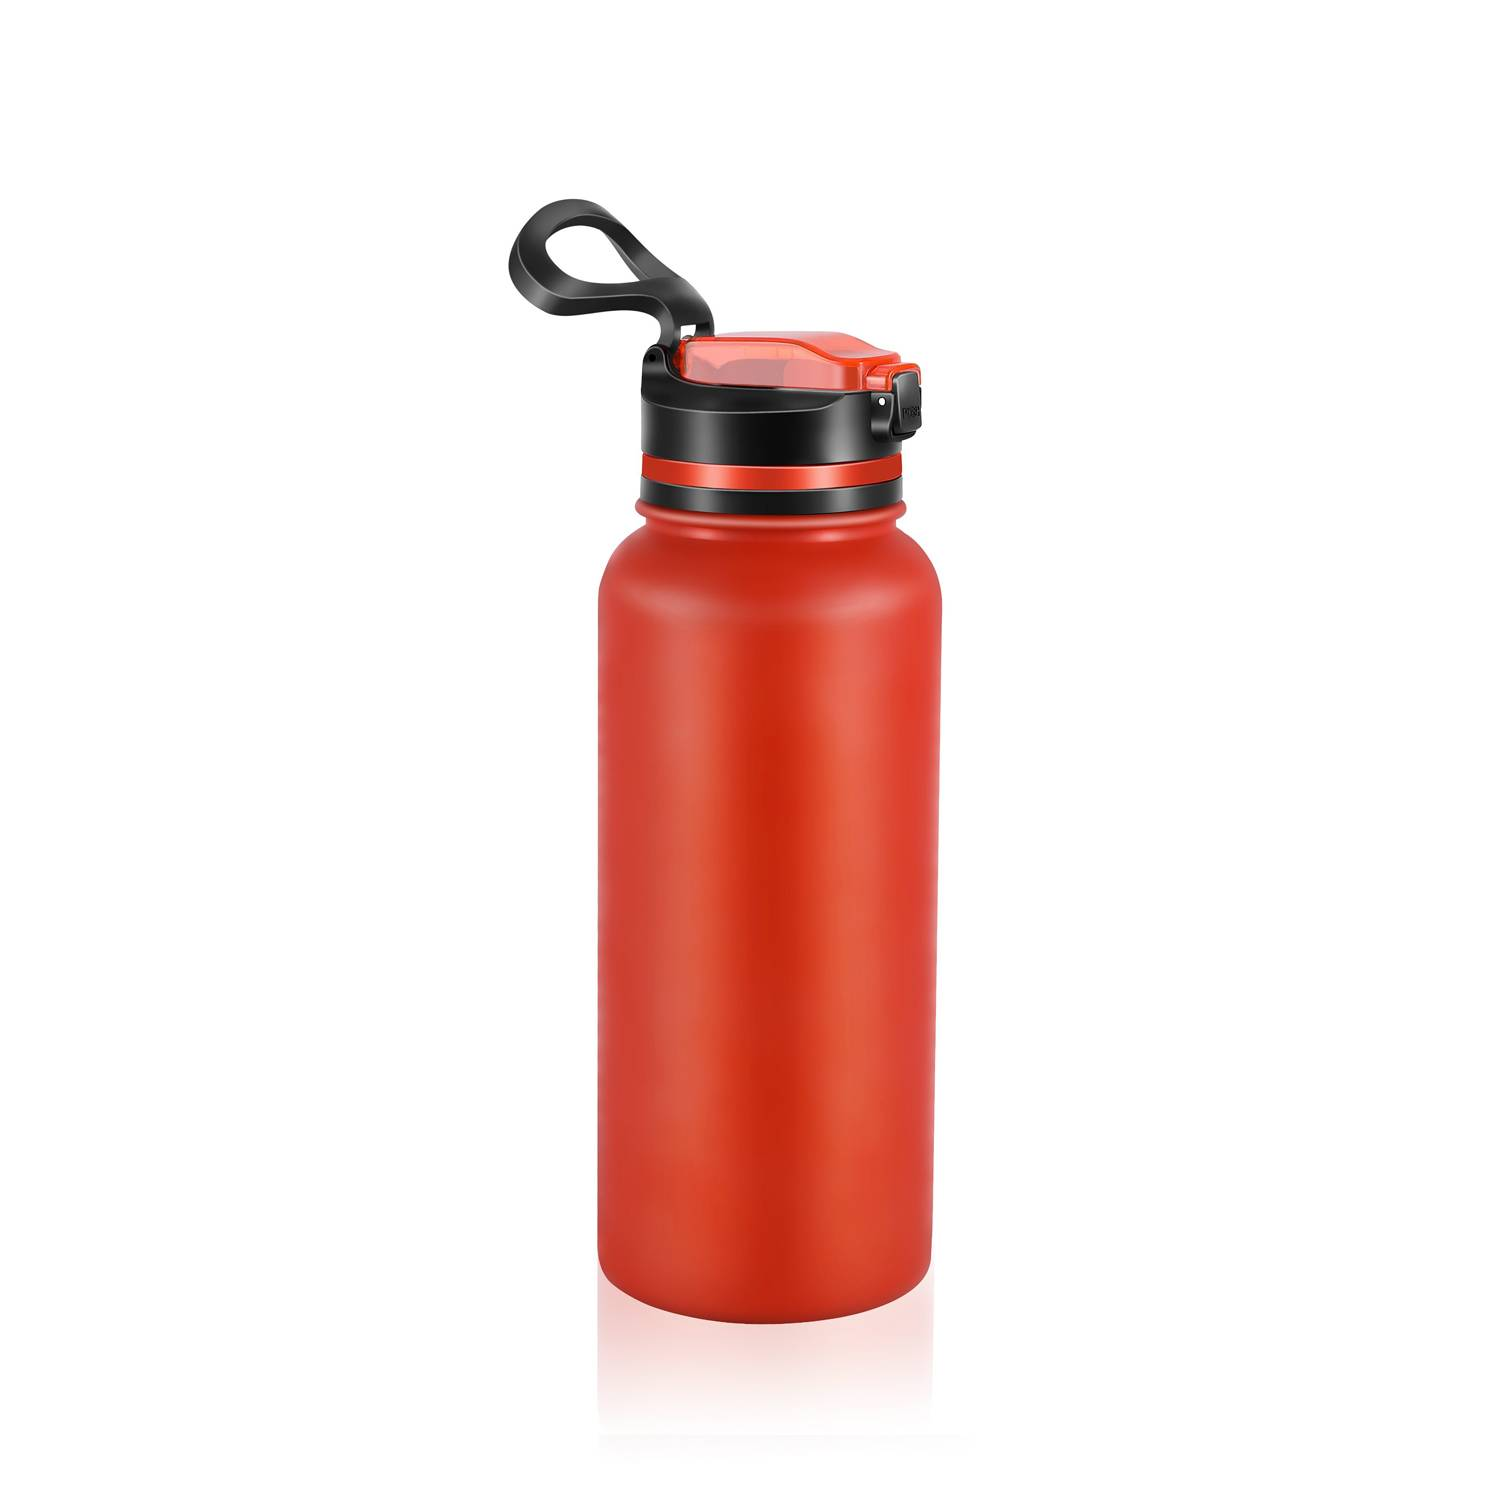 Purewell Stainless Steel Vacuum Water Filter Bottle 1000ml K8639